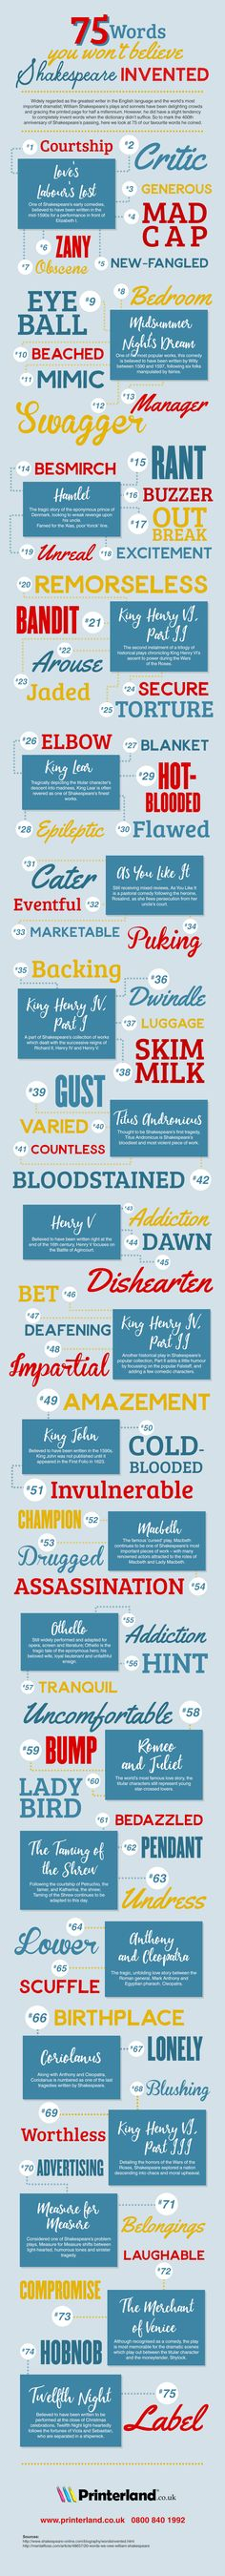 William Shakespeare infographic for Printerland